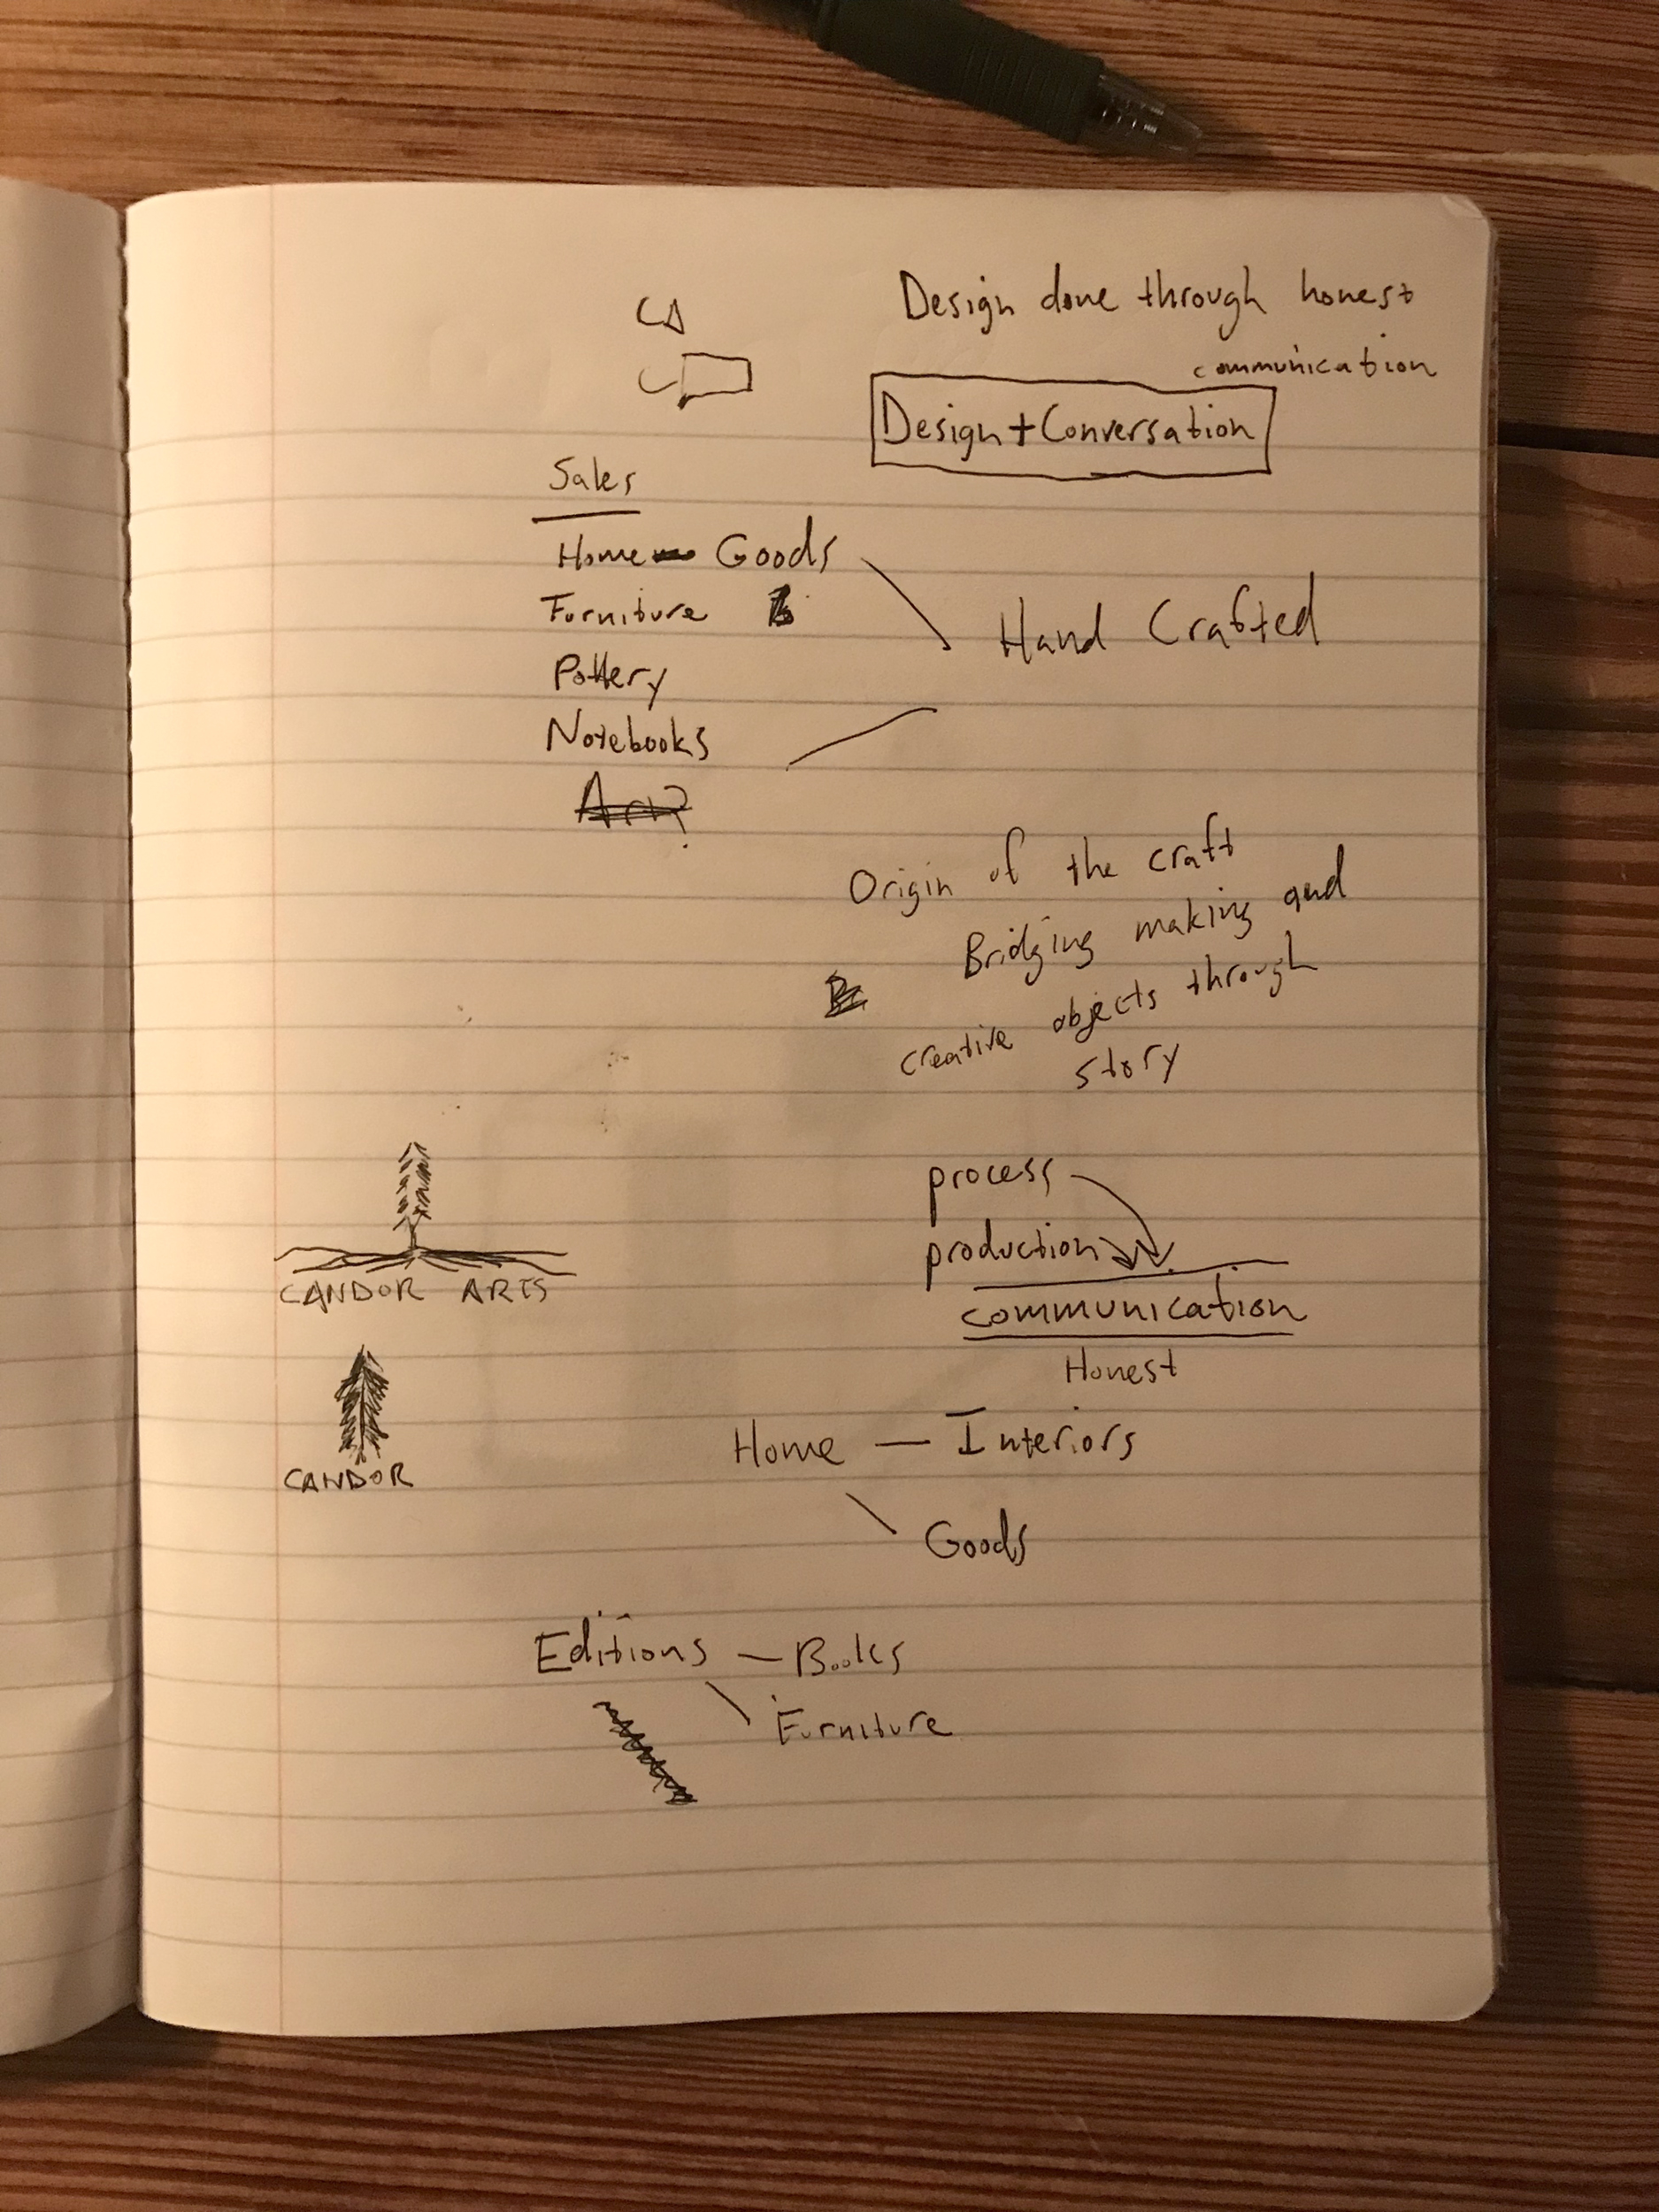 First notes on Candor Arts in July 2015, Los Angeles.